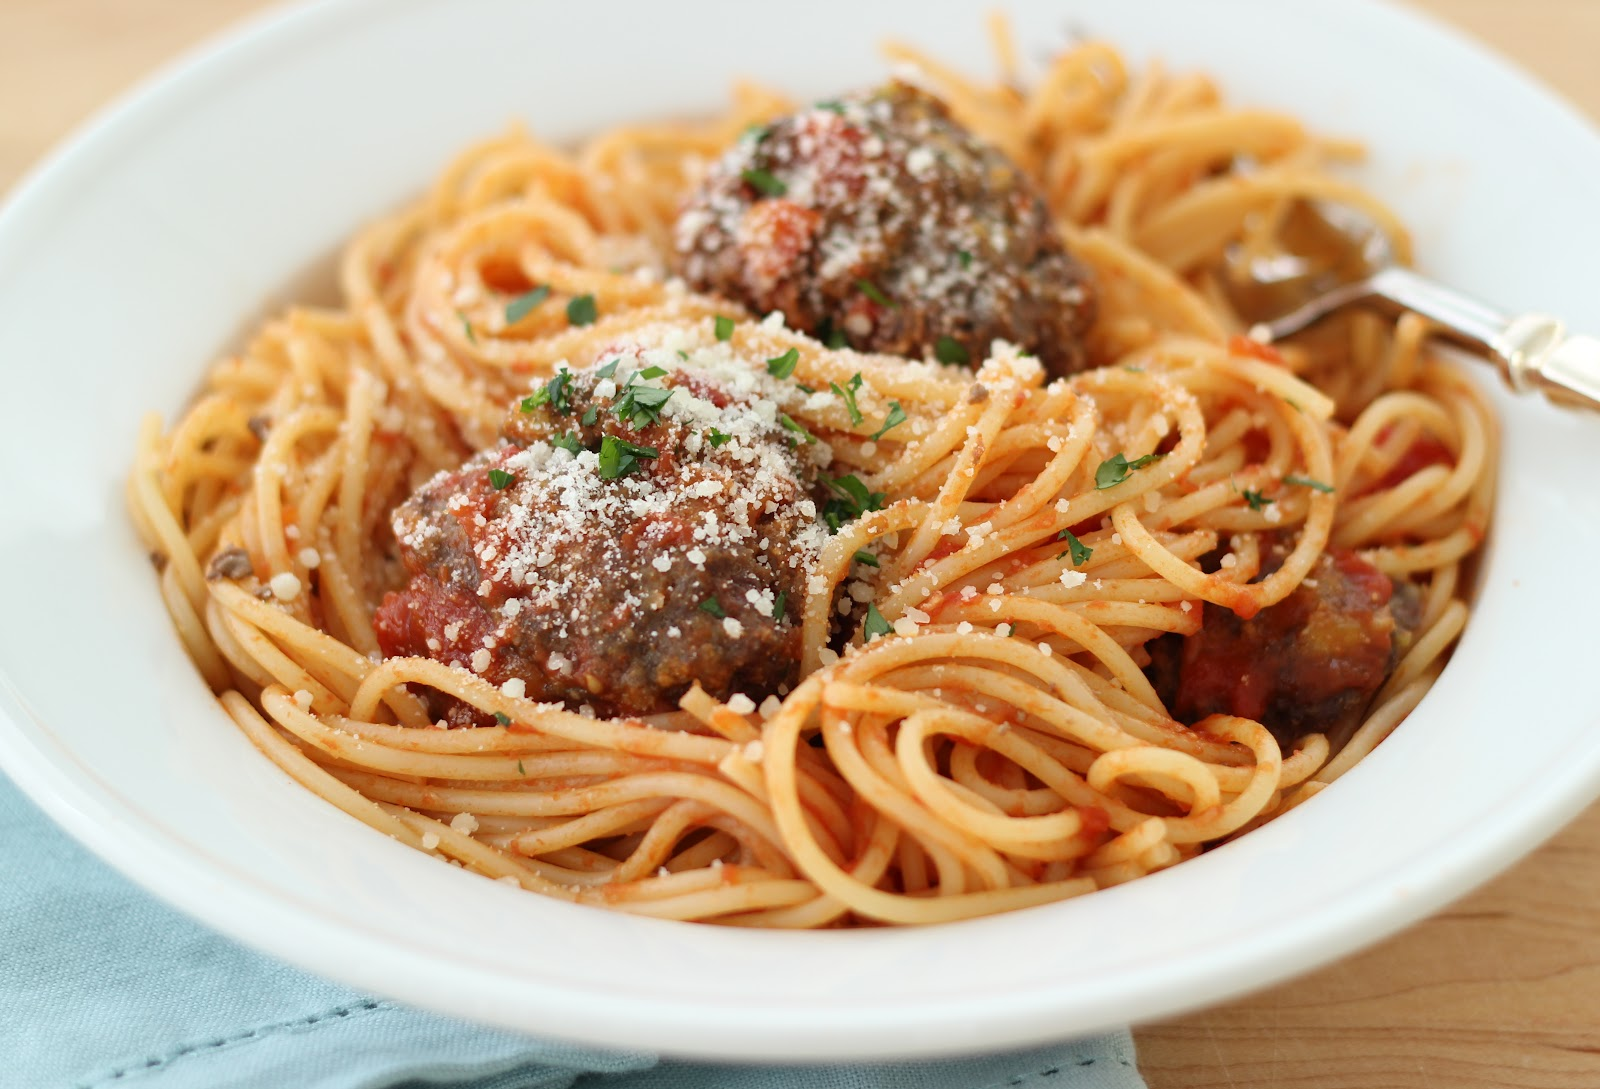 ... Steffens Hobick: The BEST Homemade Meatballs | Spaghetti & Meatballs